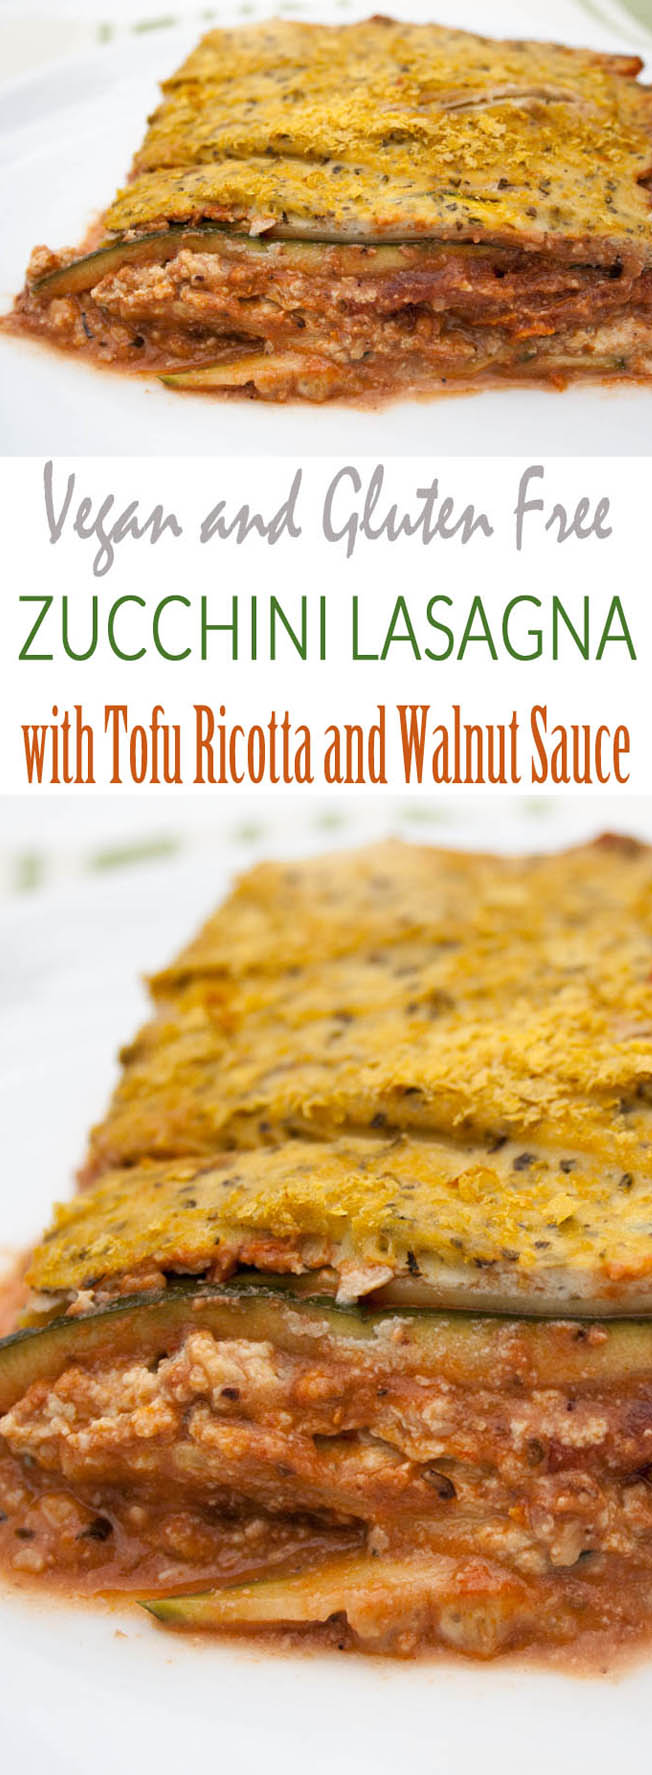 Vegan Zucchini Lasagna collage photo with text.